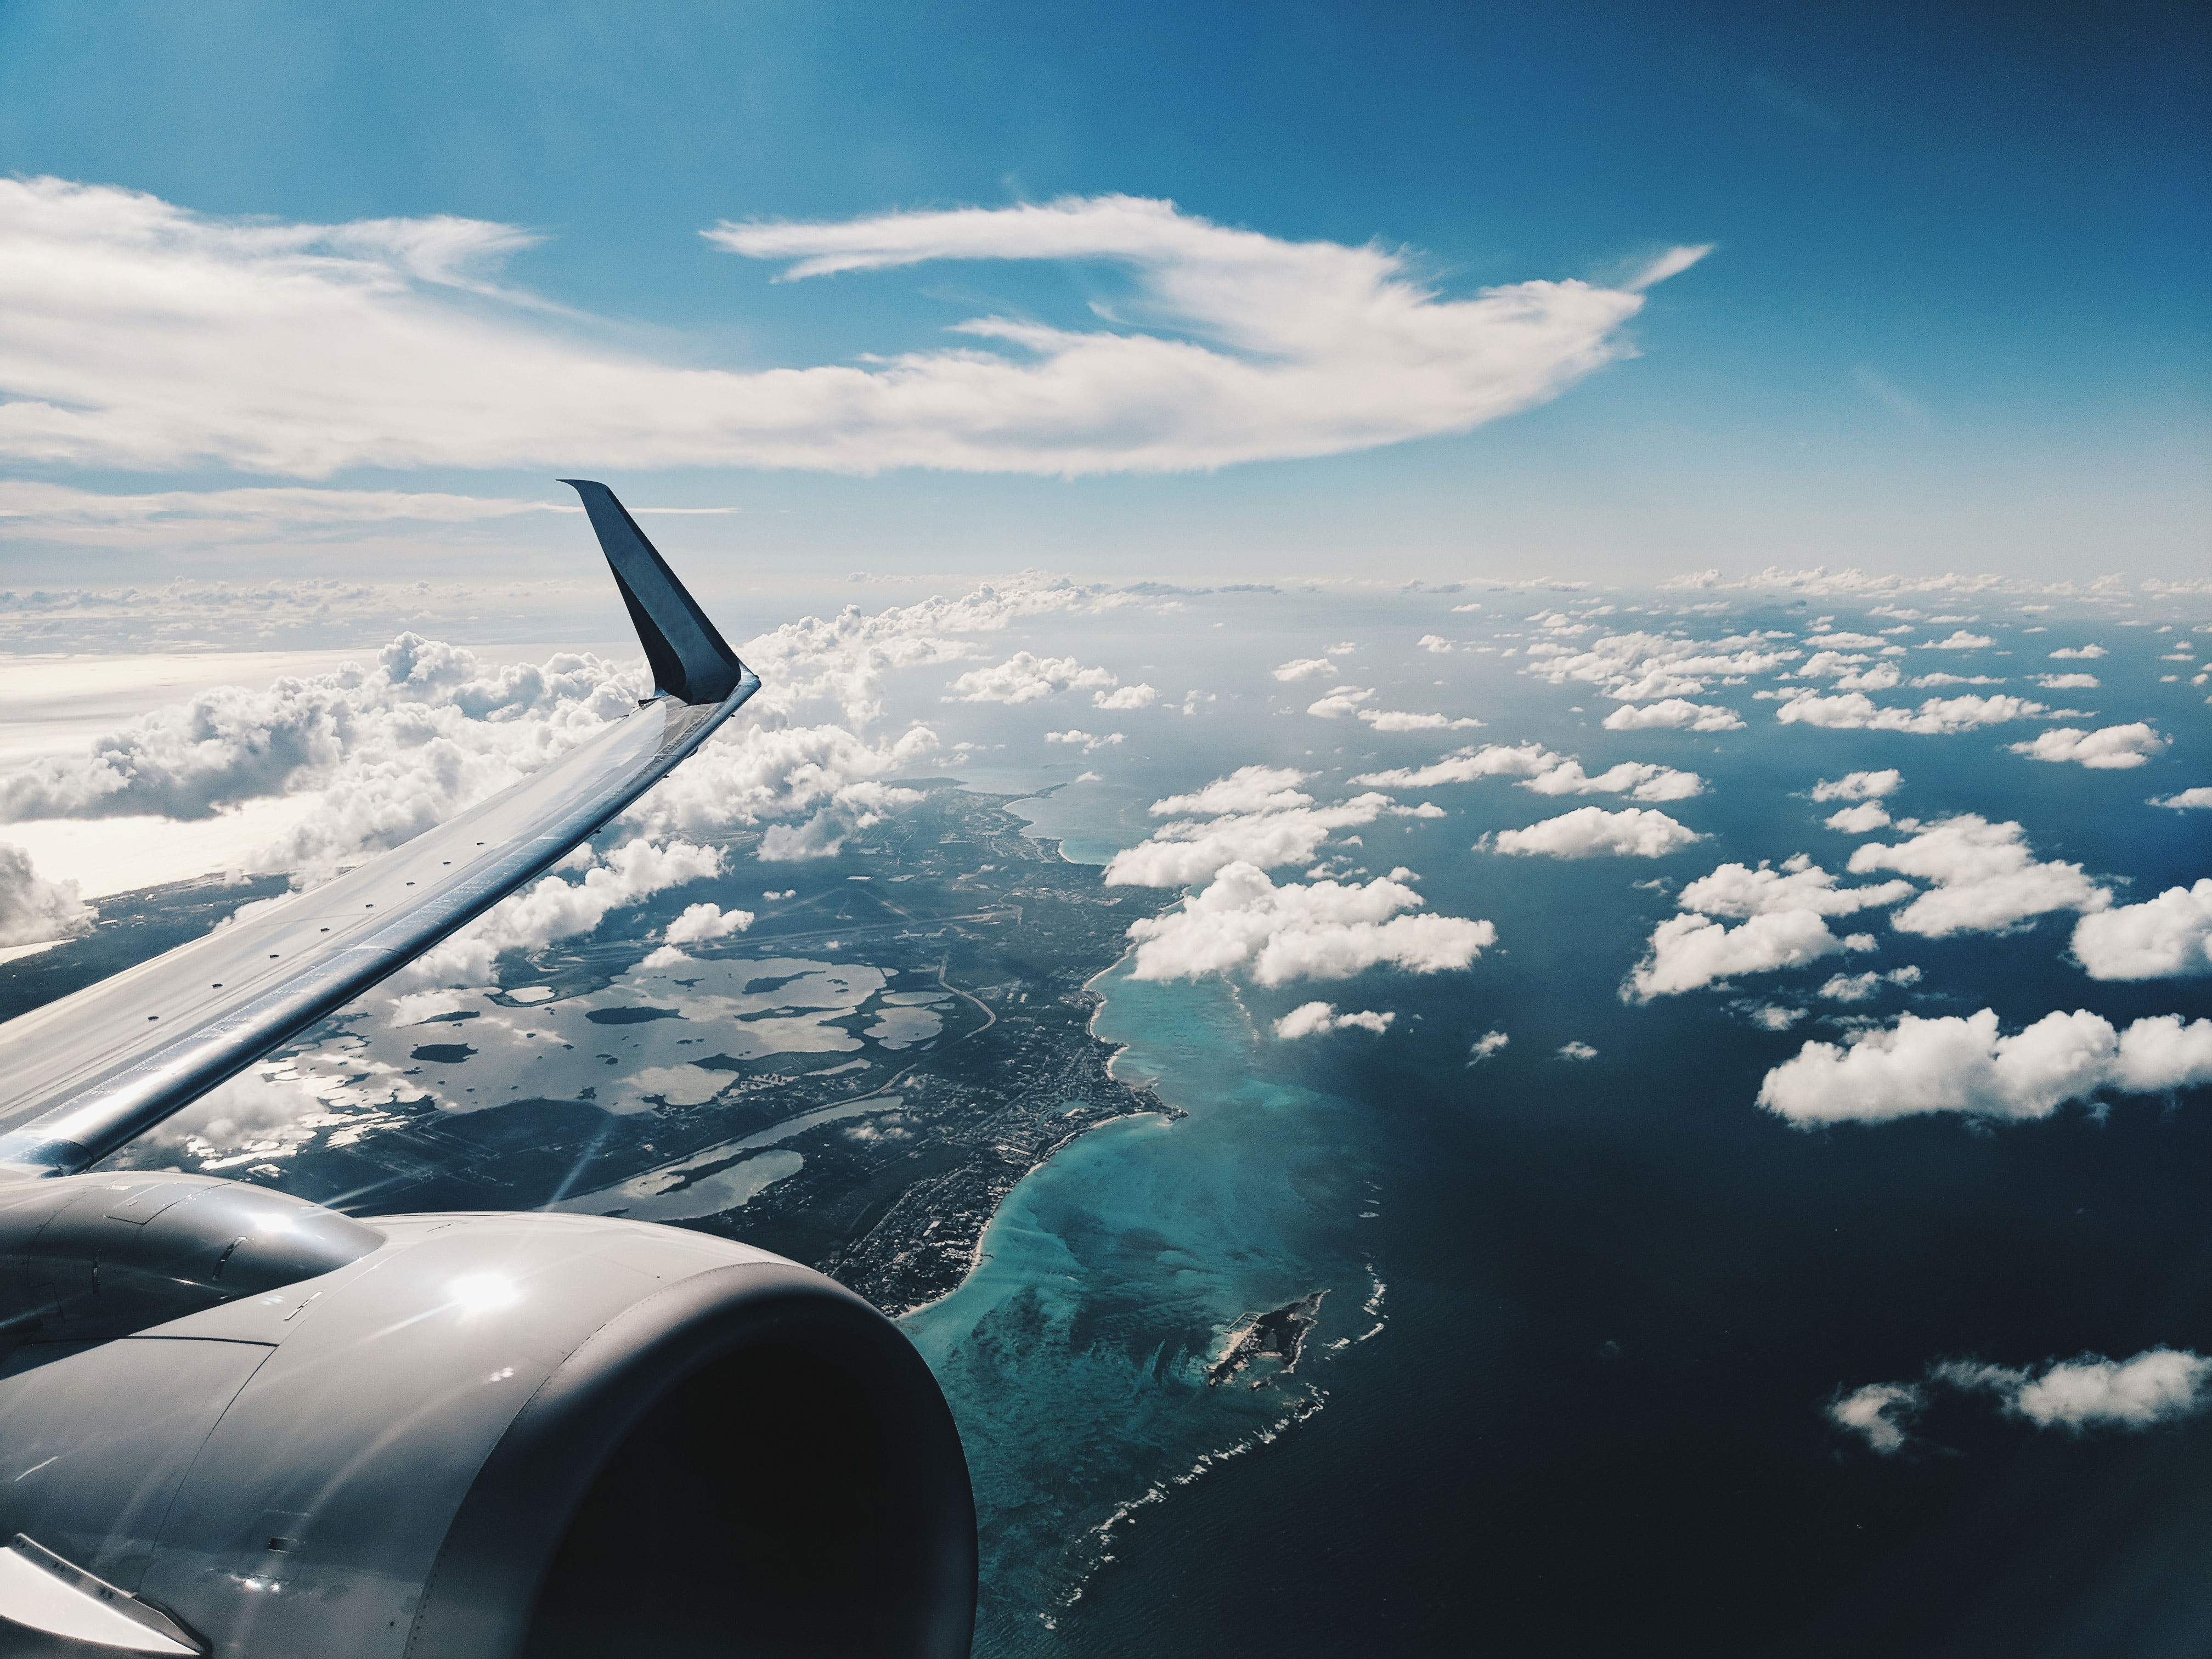 WHAT IS THE IMPACT OF AIR TRAVEL TO OUR ENVIRONMENT?